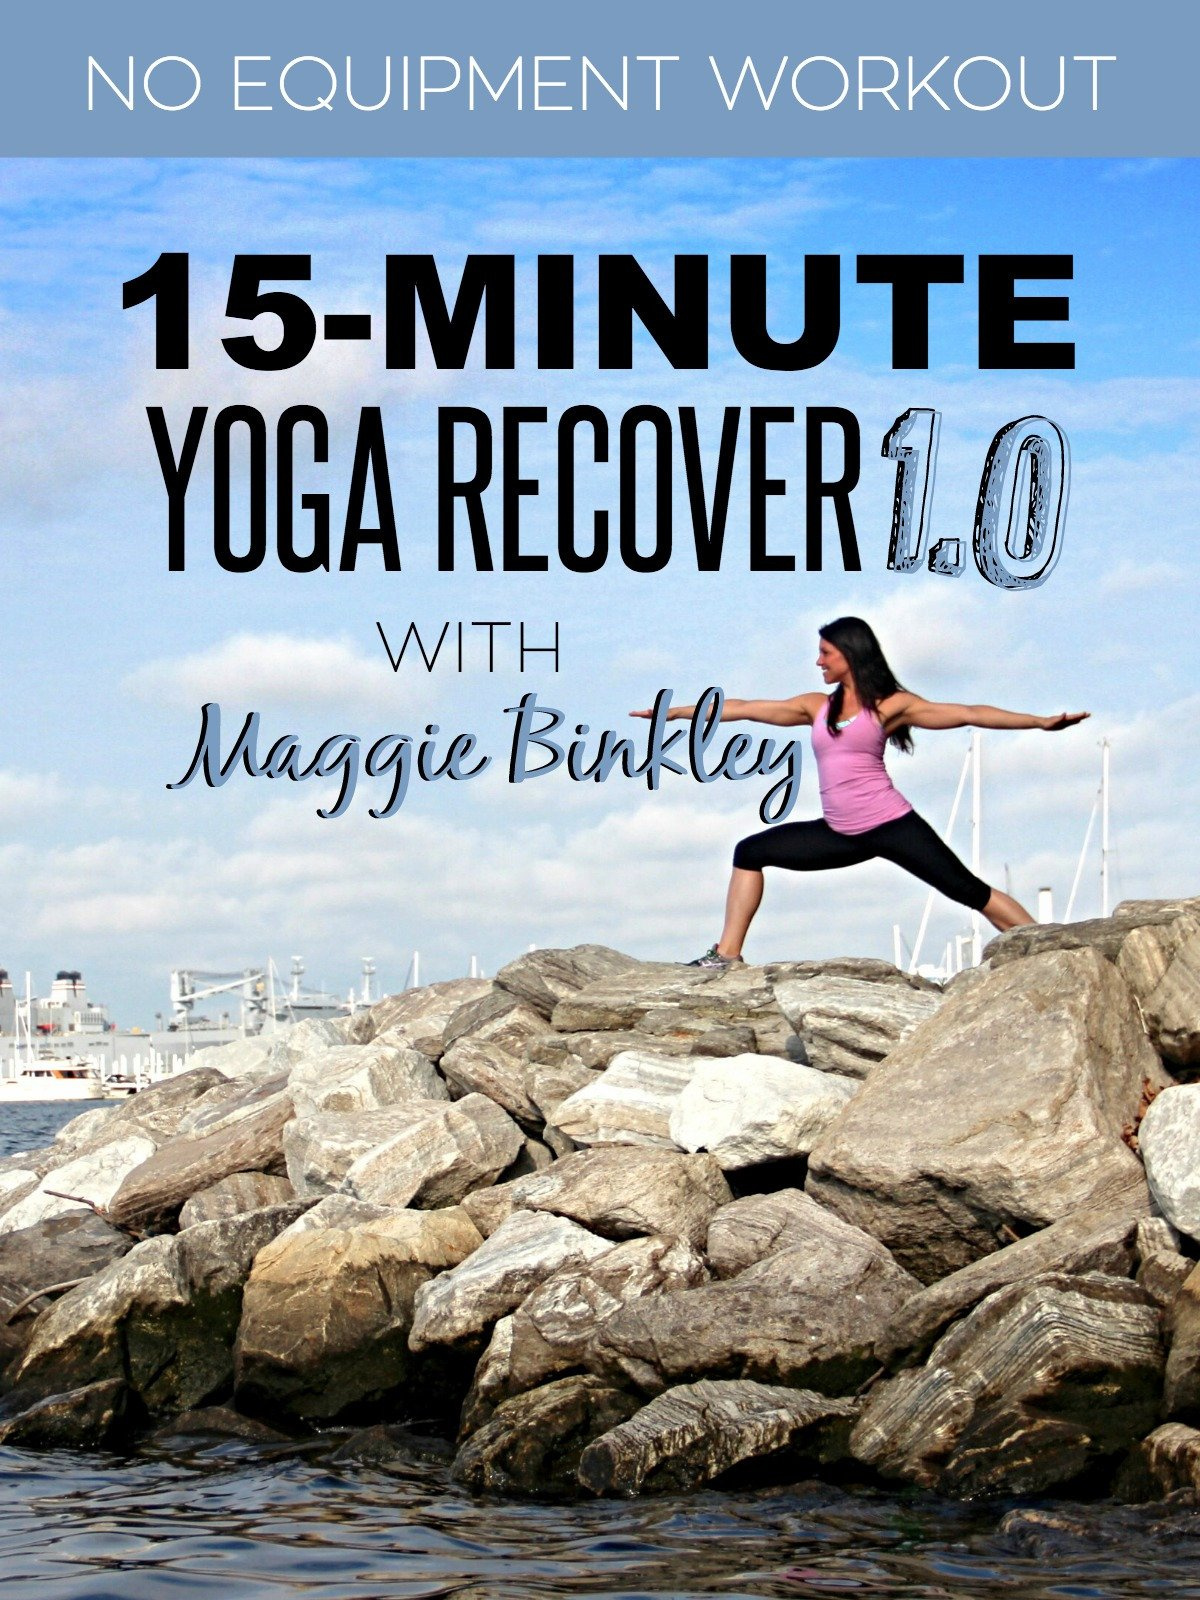 15-Minute Yoga Recover 1.0 Workout